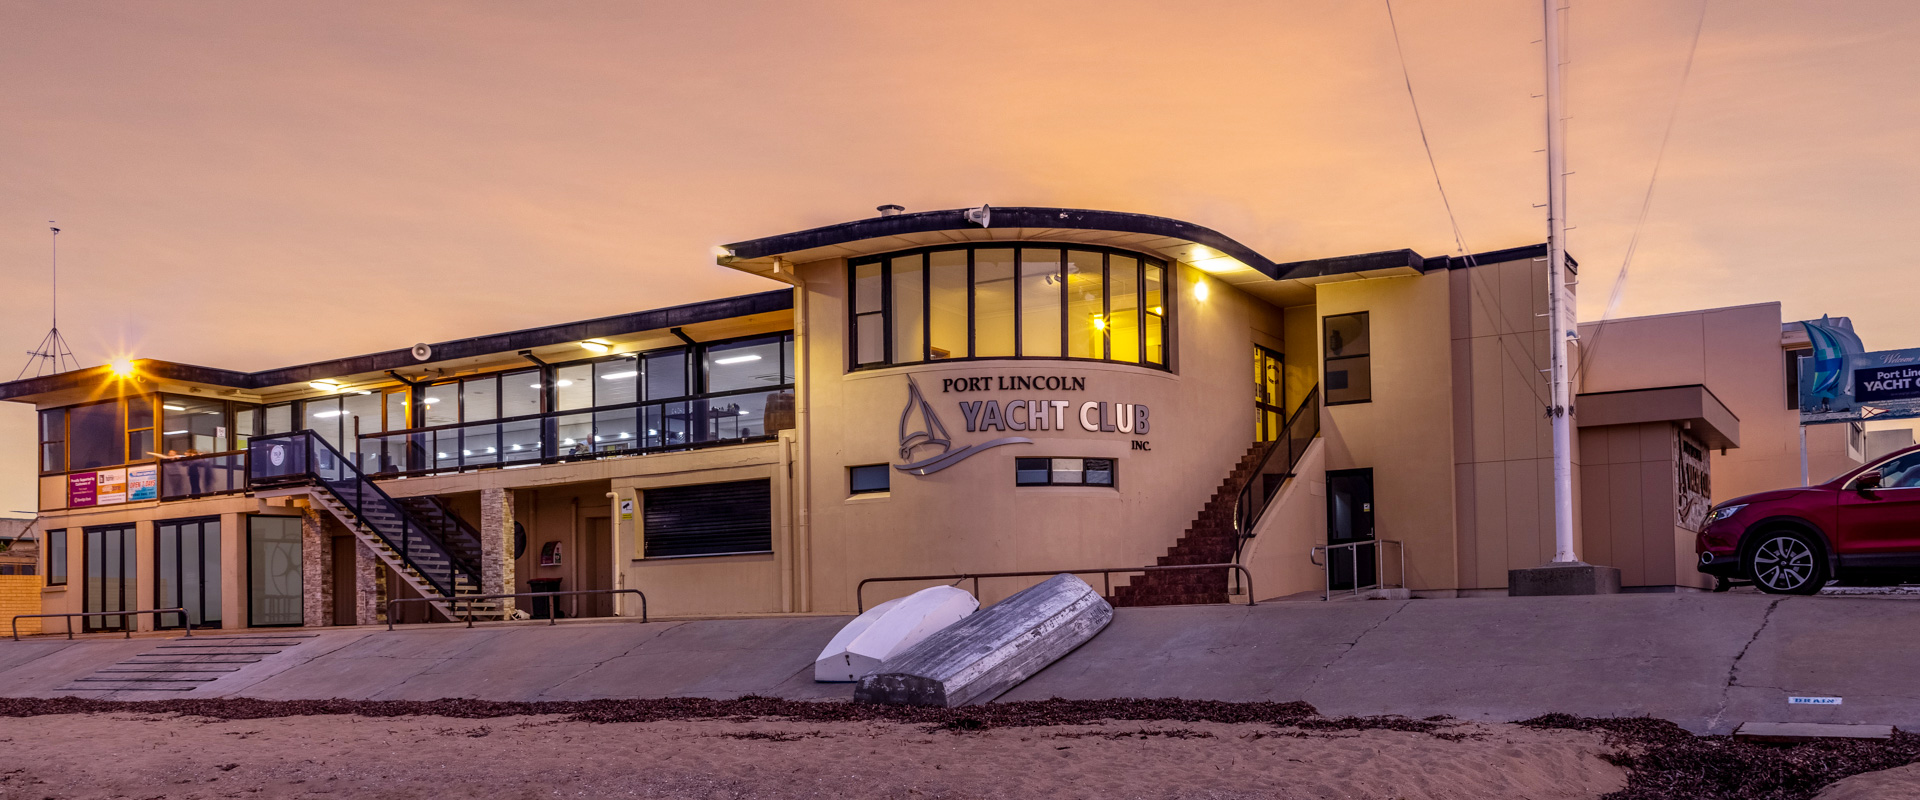 Port Lincoln Yacht Club